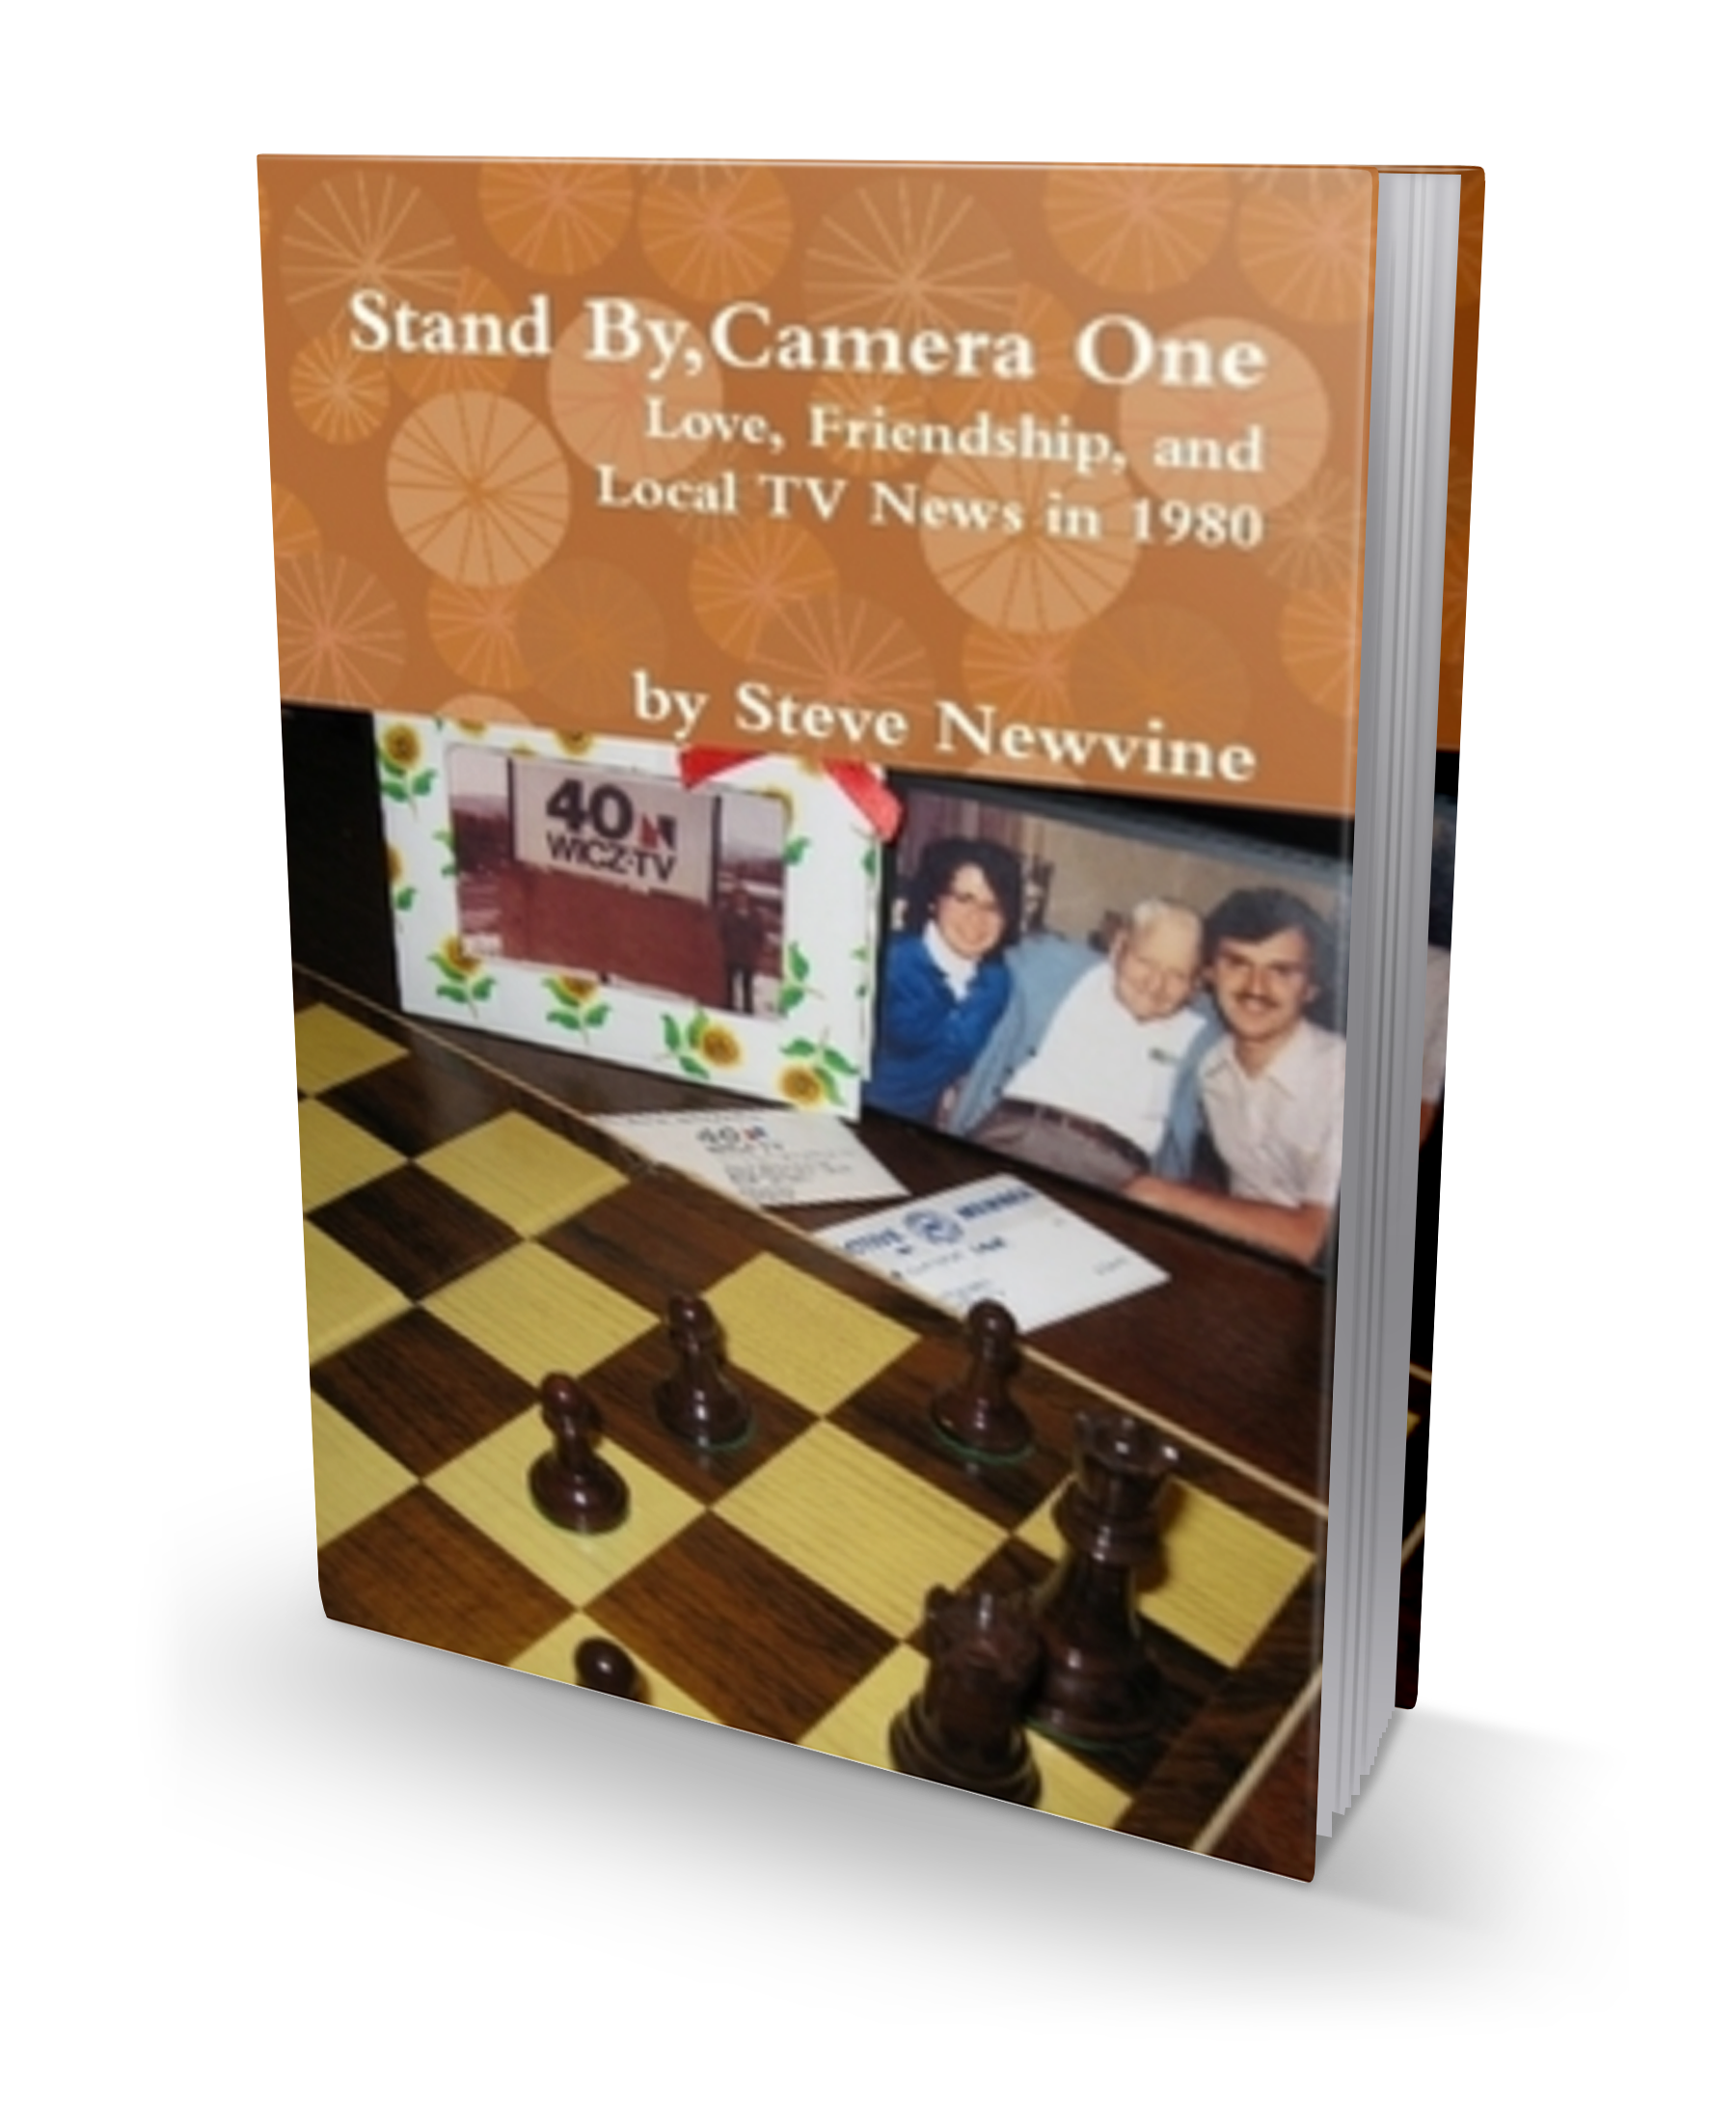 My eleventh book is called Stand By, Camera One